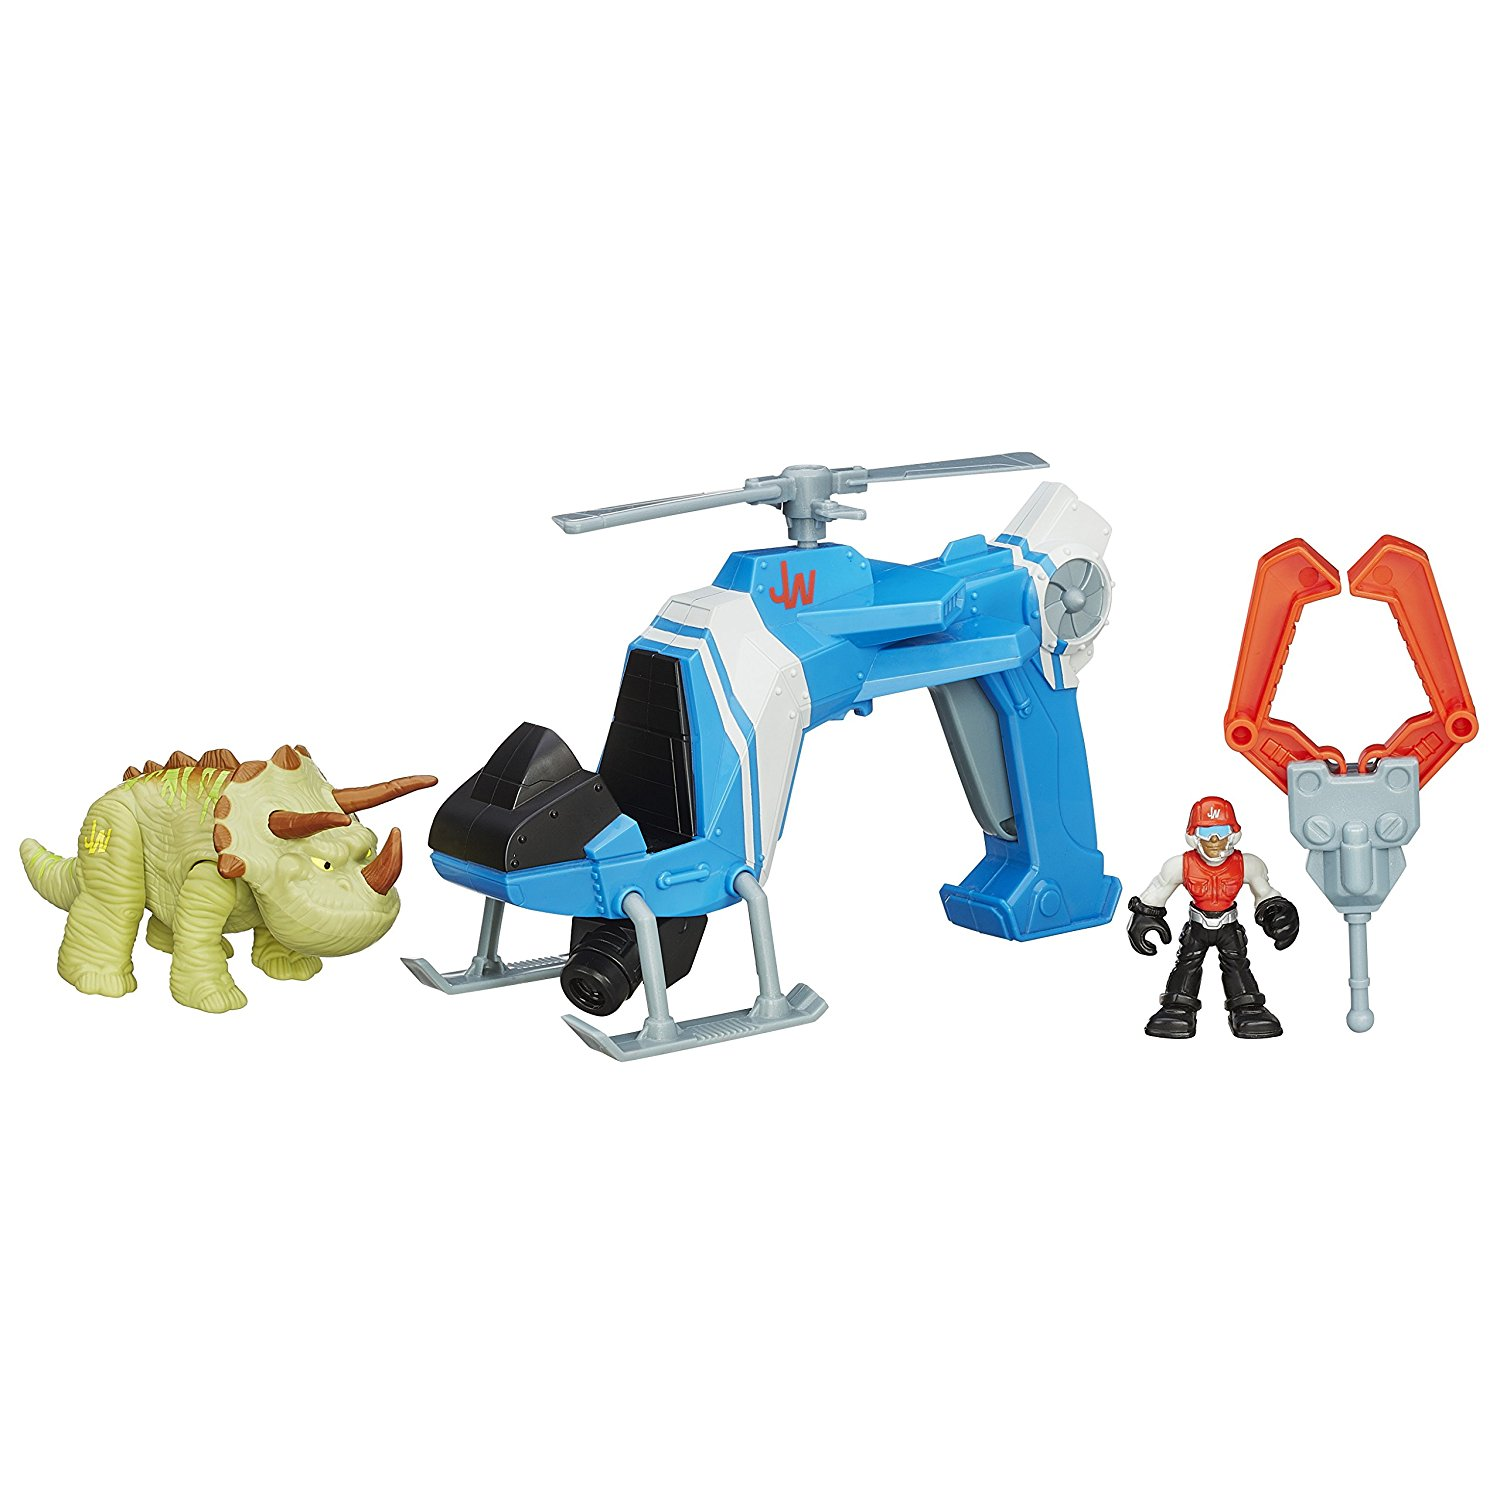 Heroes Jurassic World Dino Tracker Copter Toy..., By Playskool Ship from US by